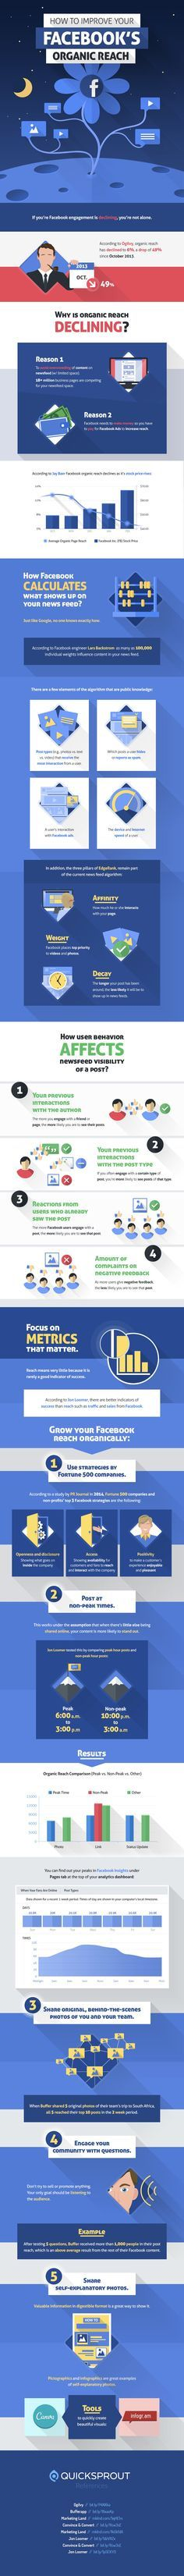 Improving Your Facebook Reach #infographic